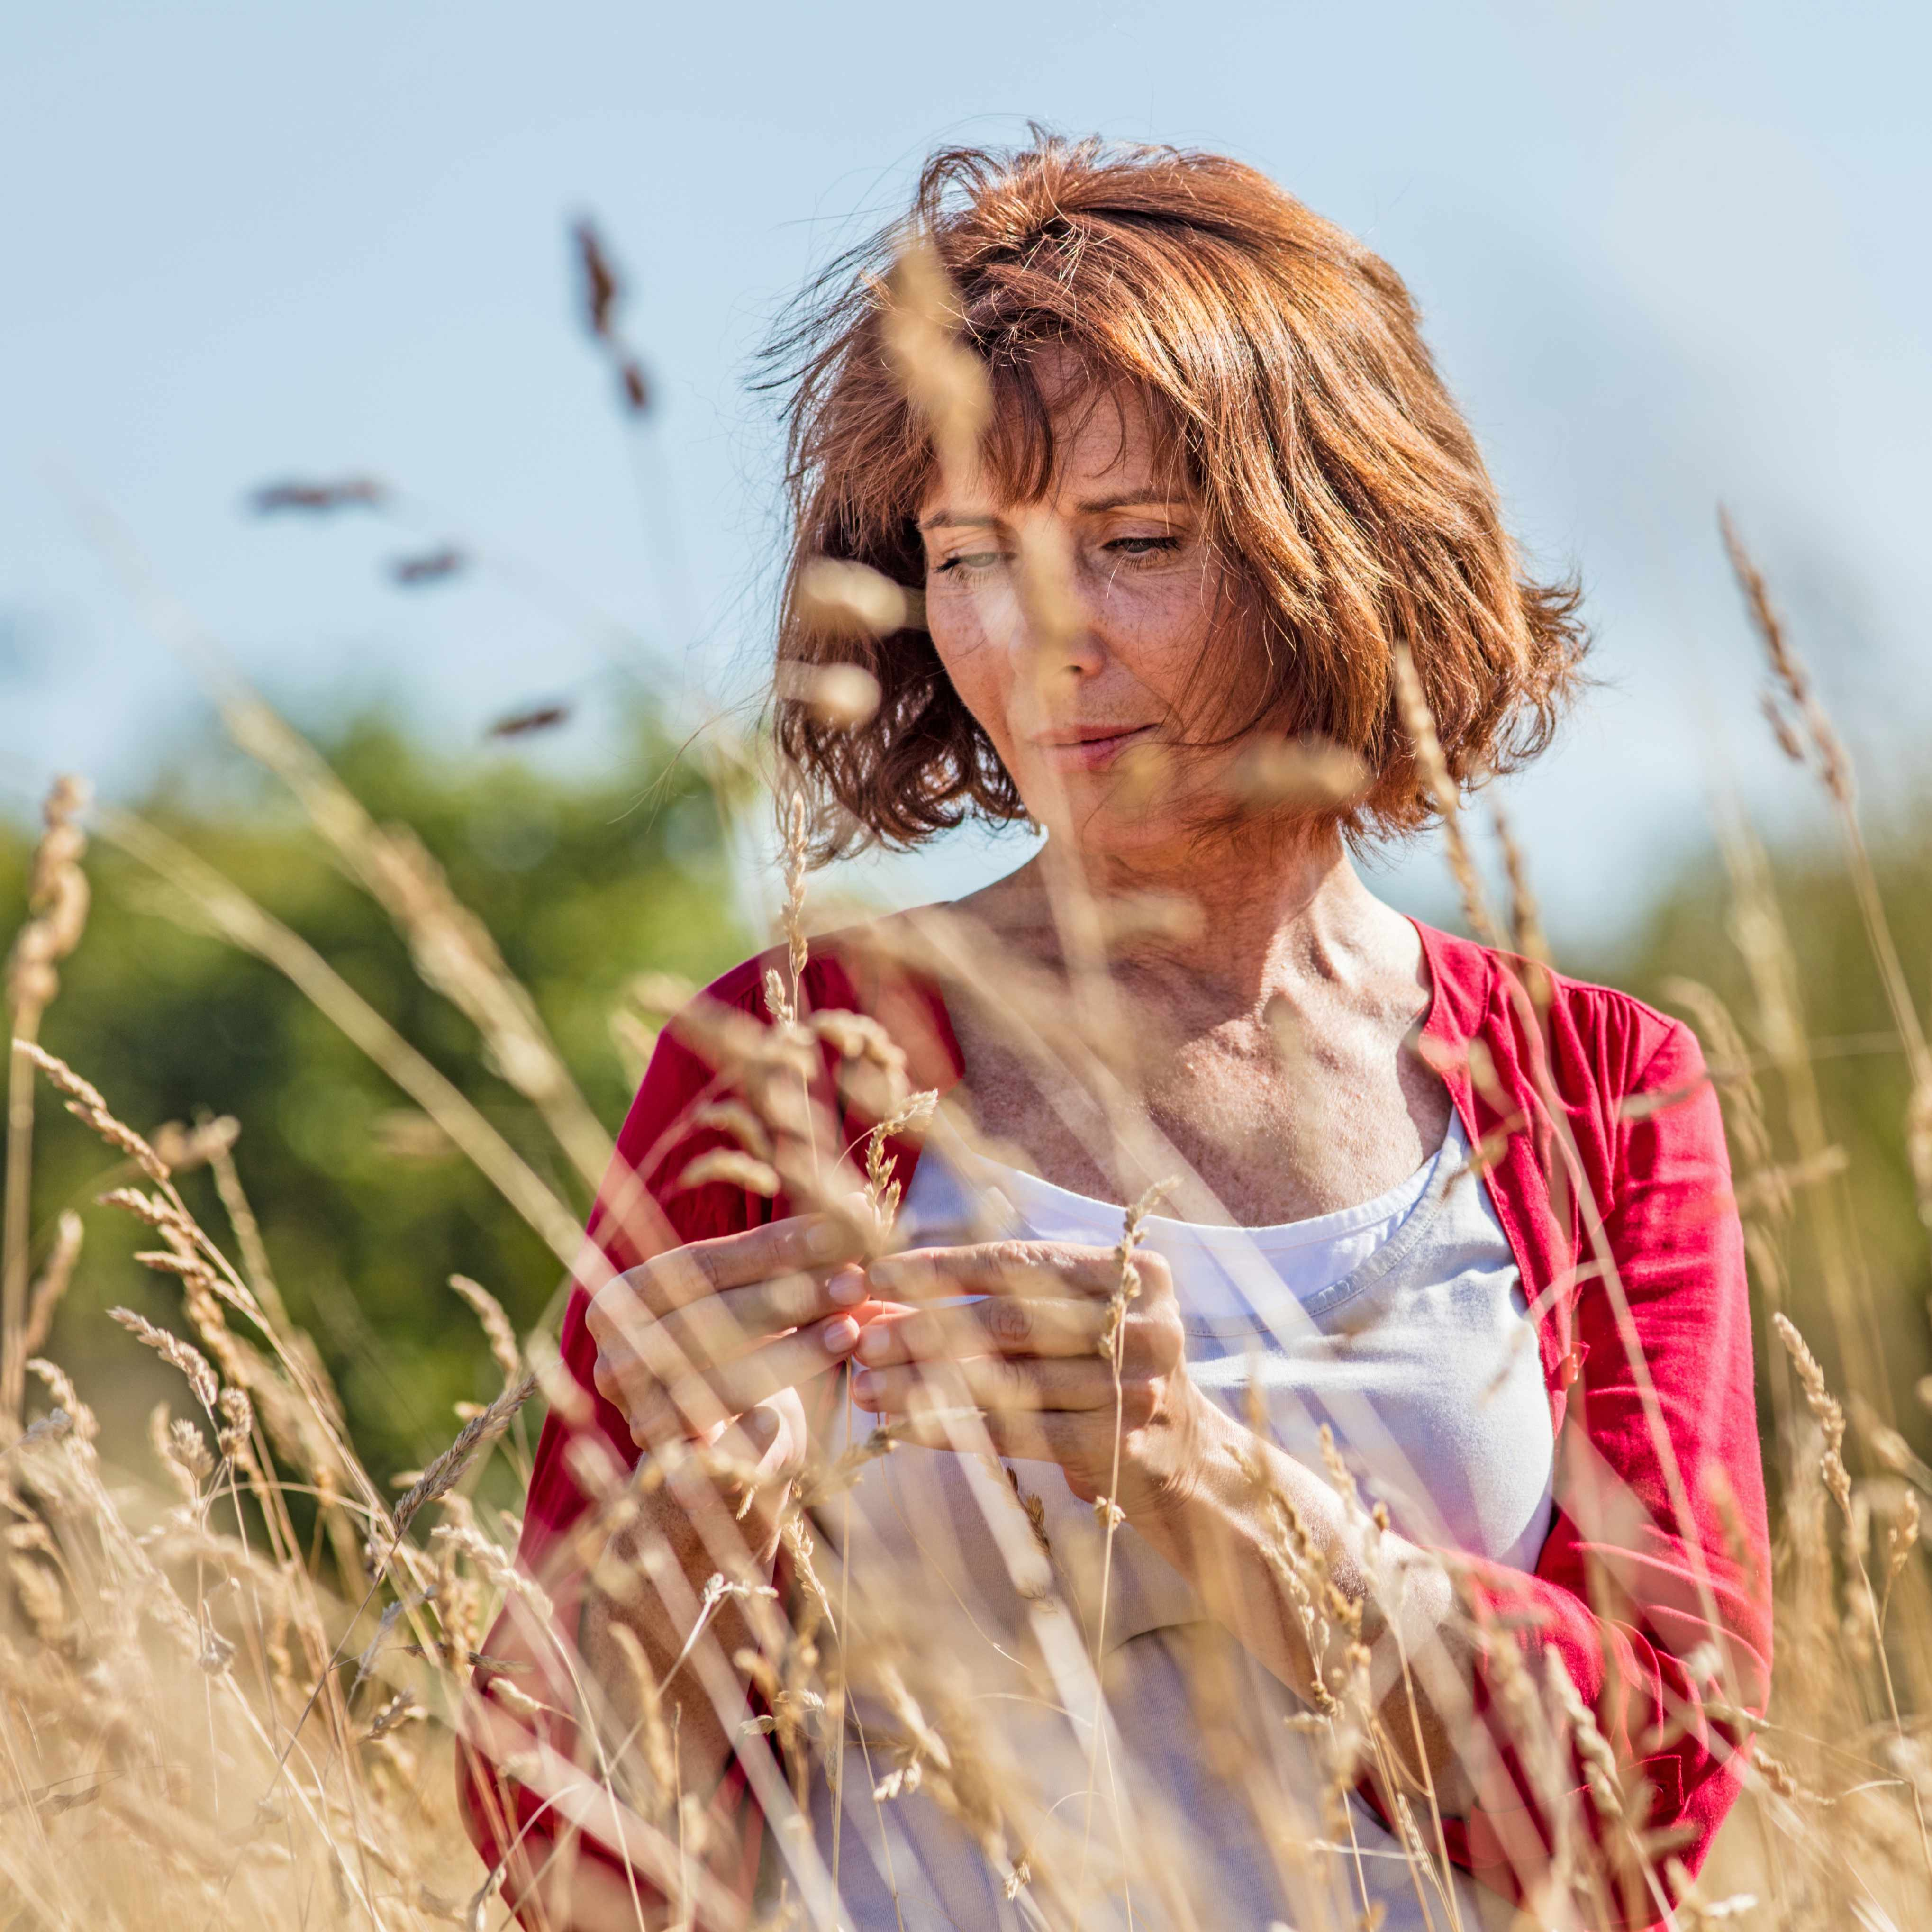 a middle-aged woman in a field of wheat taking a nature walk and looking serious or sad